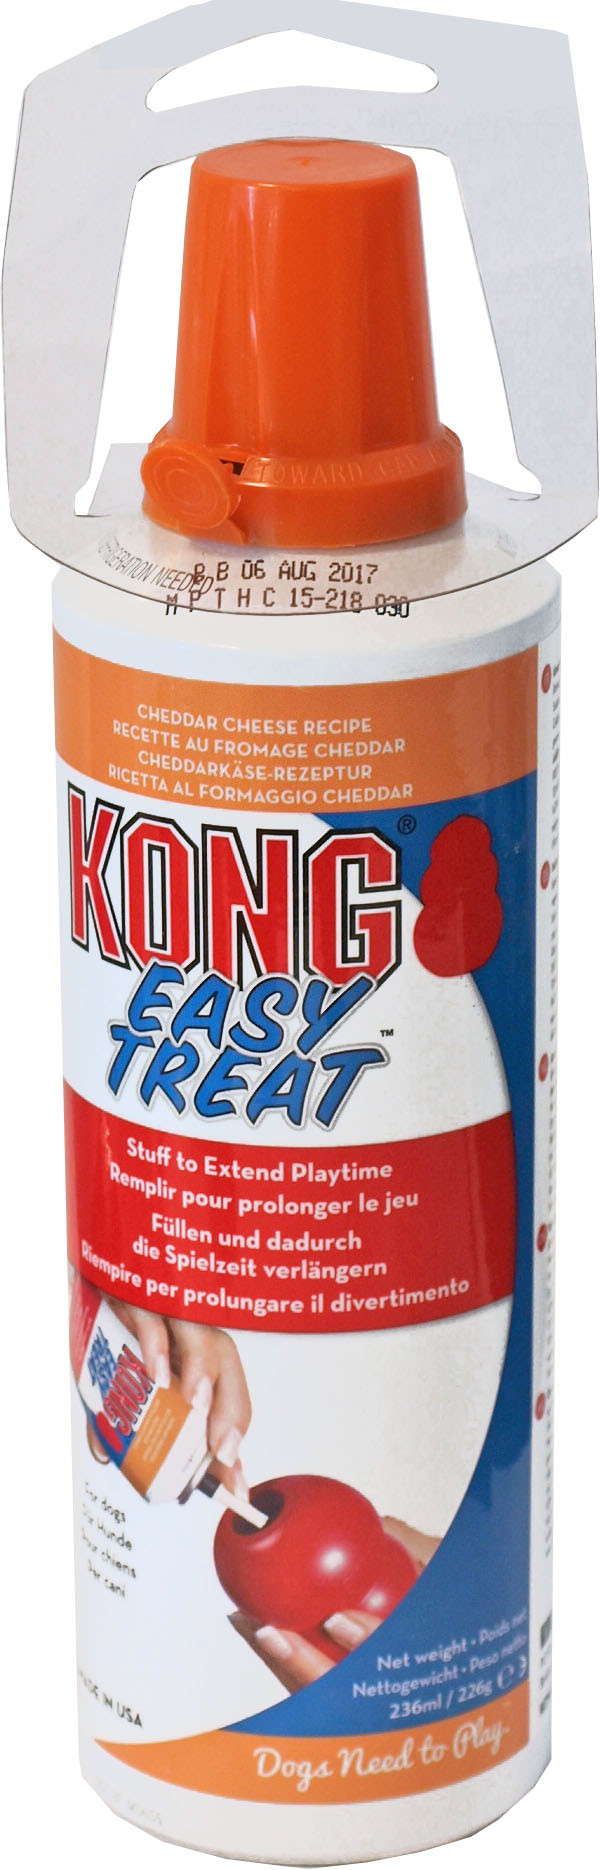 Kong spuitbus Easy Treat cheddar cheese